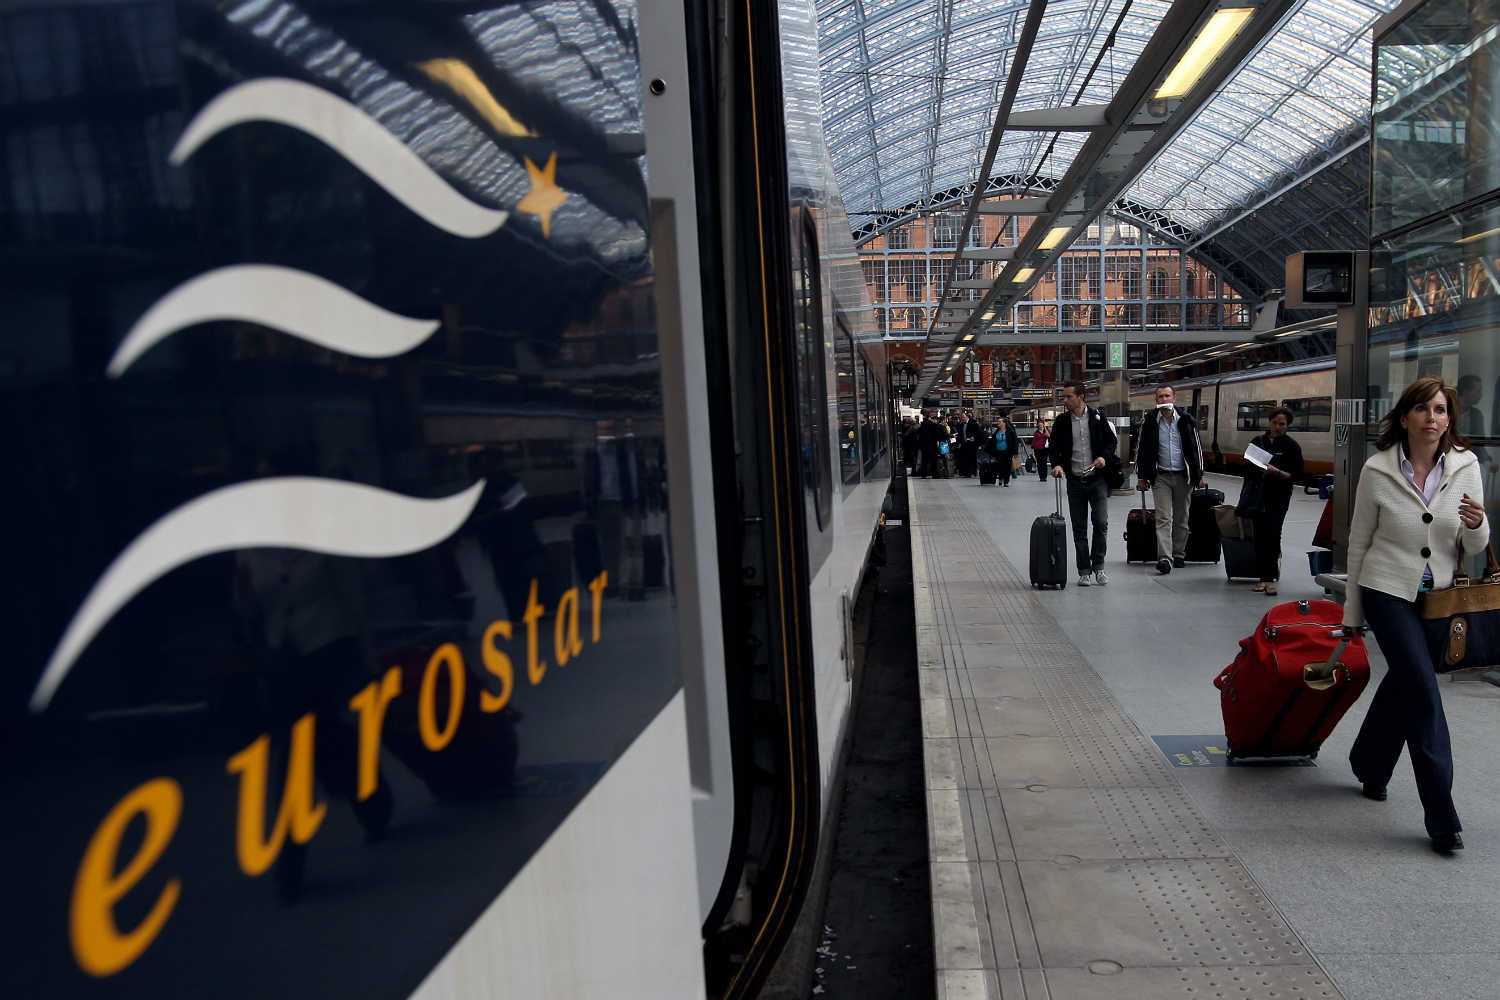 Eurostar services will be affected up to and including on New Year's Eve